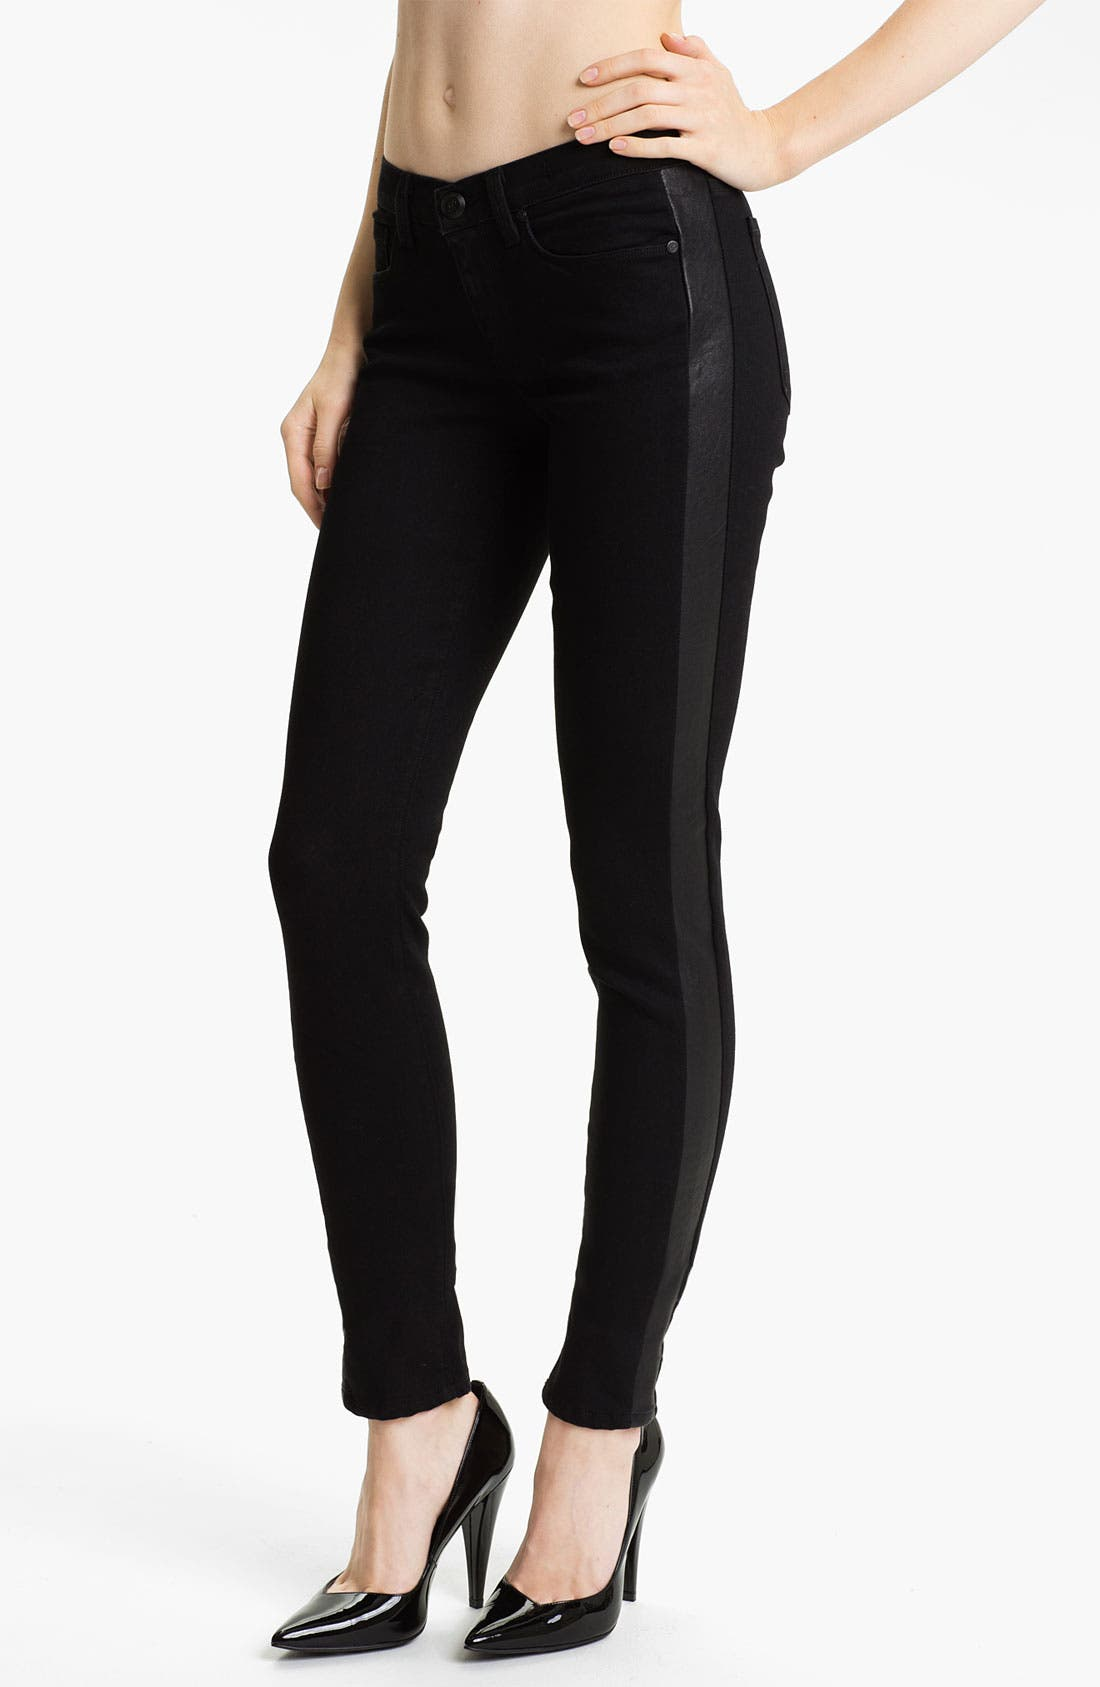 Alternate Image 1 Selected - Juicy Couture Leather Tux Stripe Skinny Jeans (Lilia)